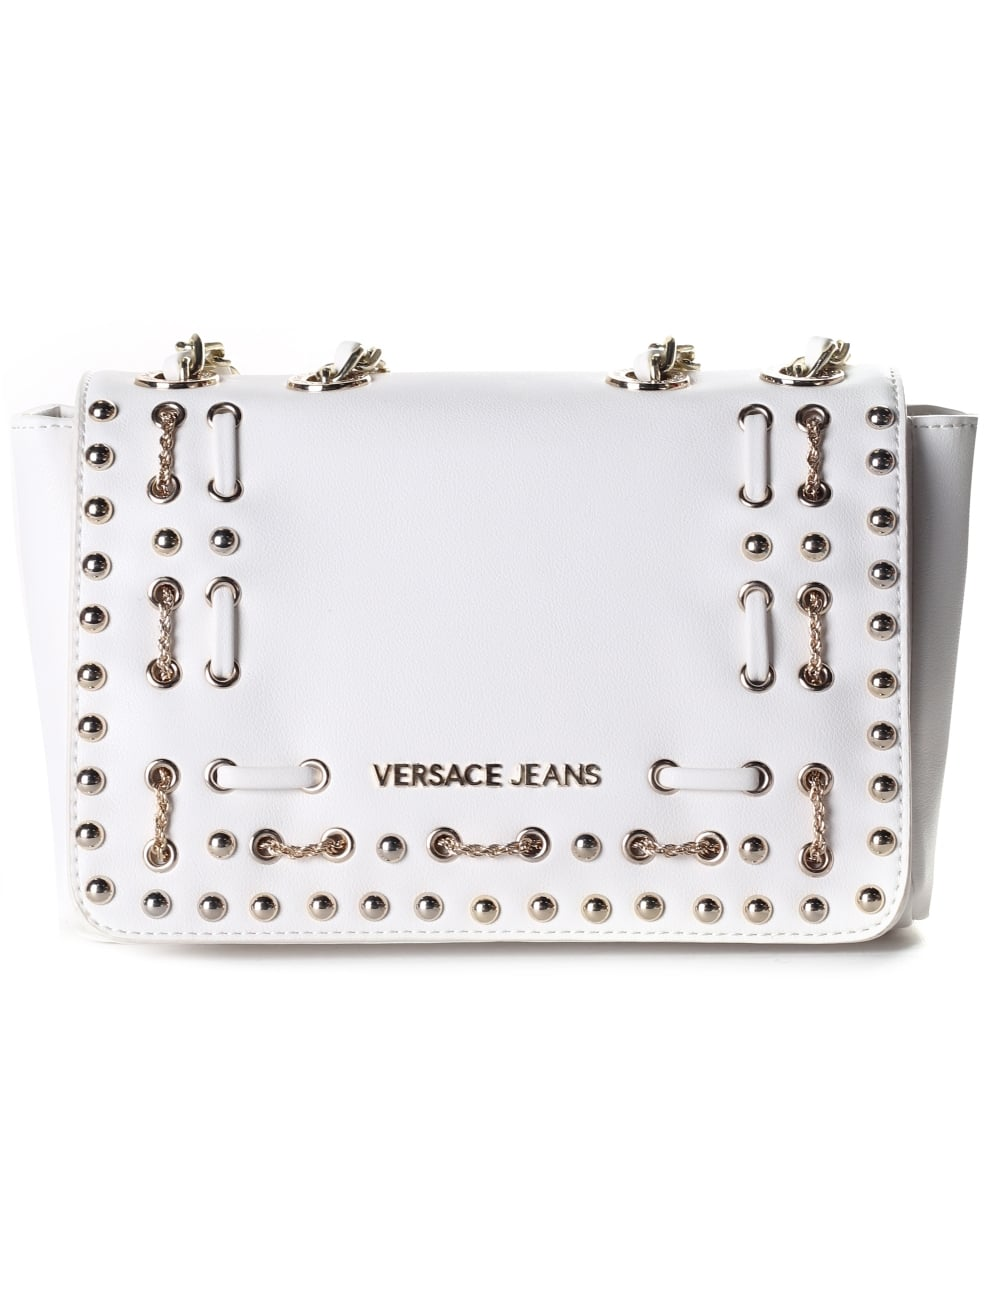 bb2c65a3c2 Versace Jeans Small Studded Women's Chain Strap bag